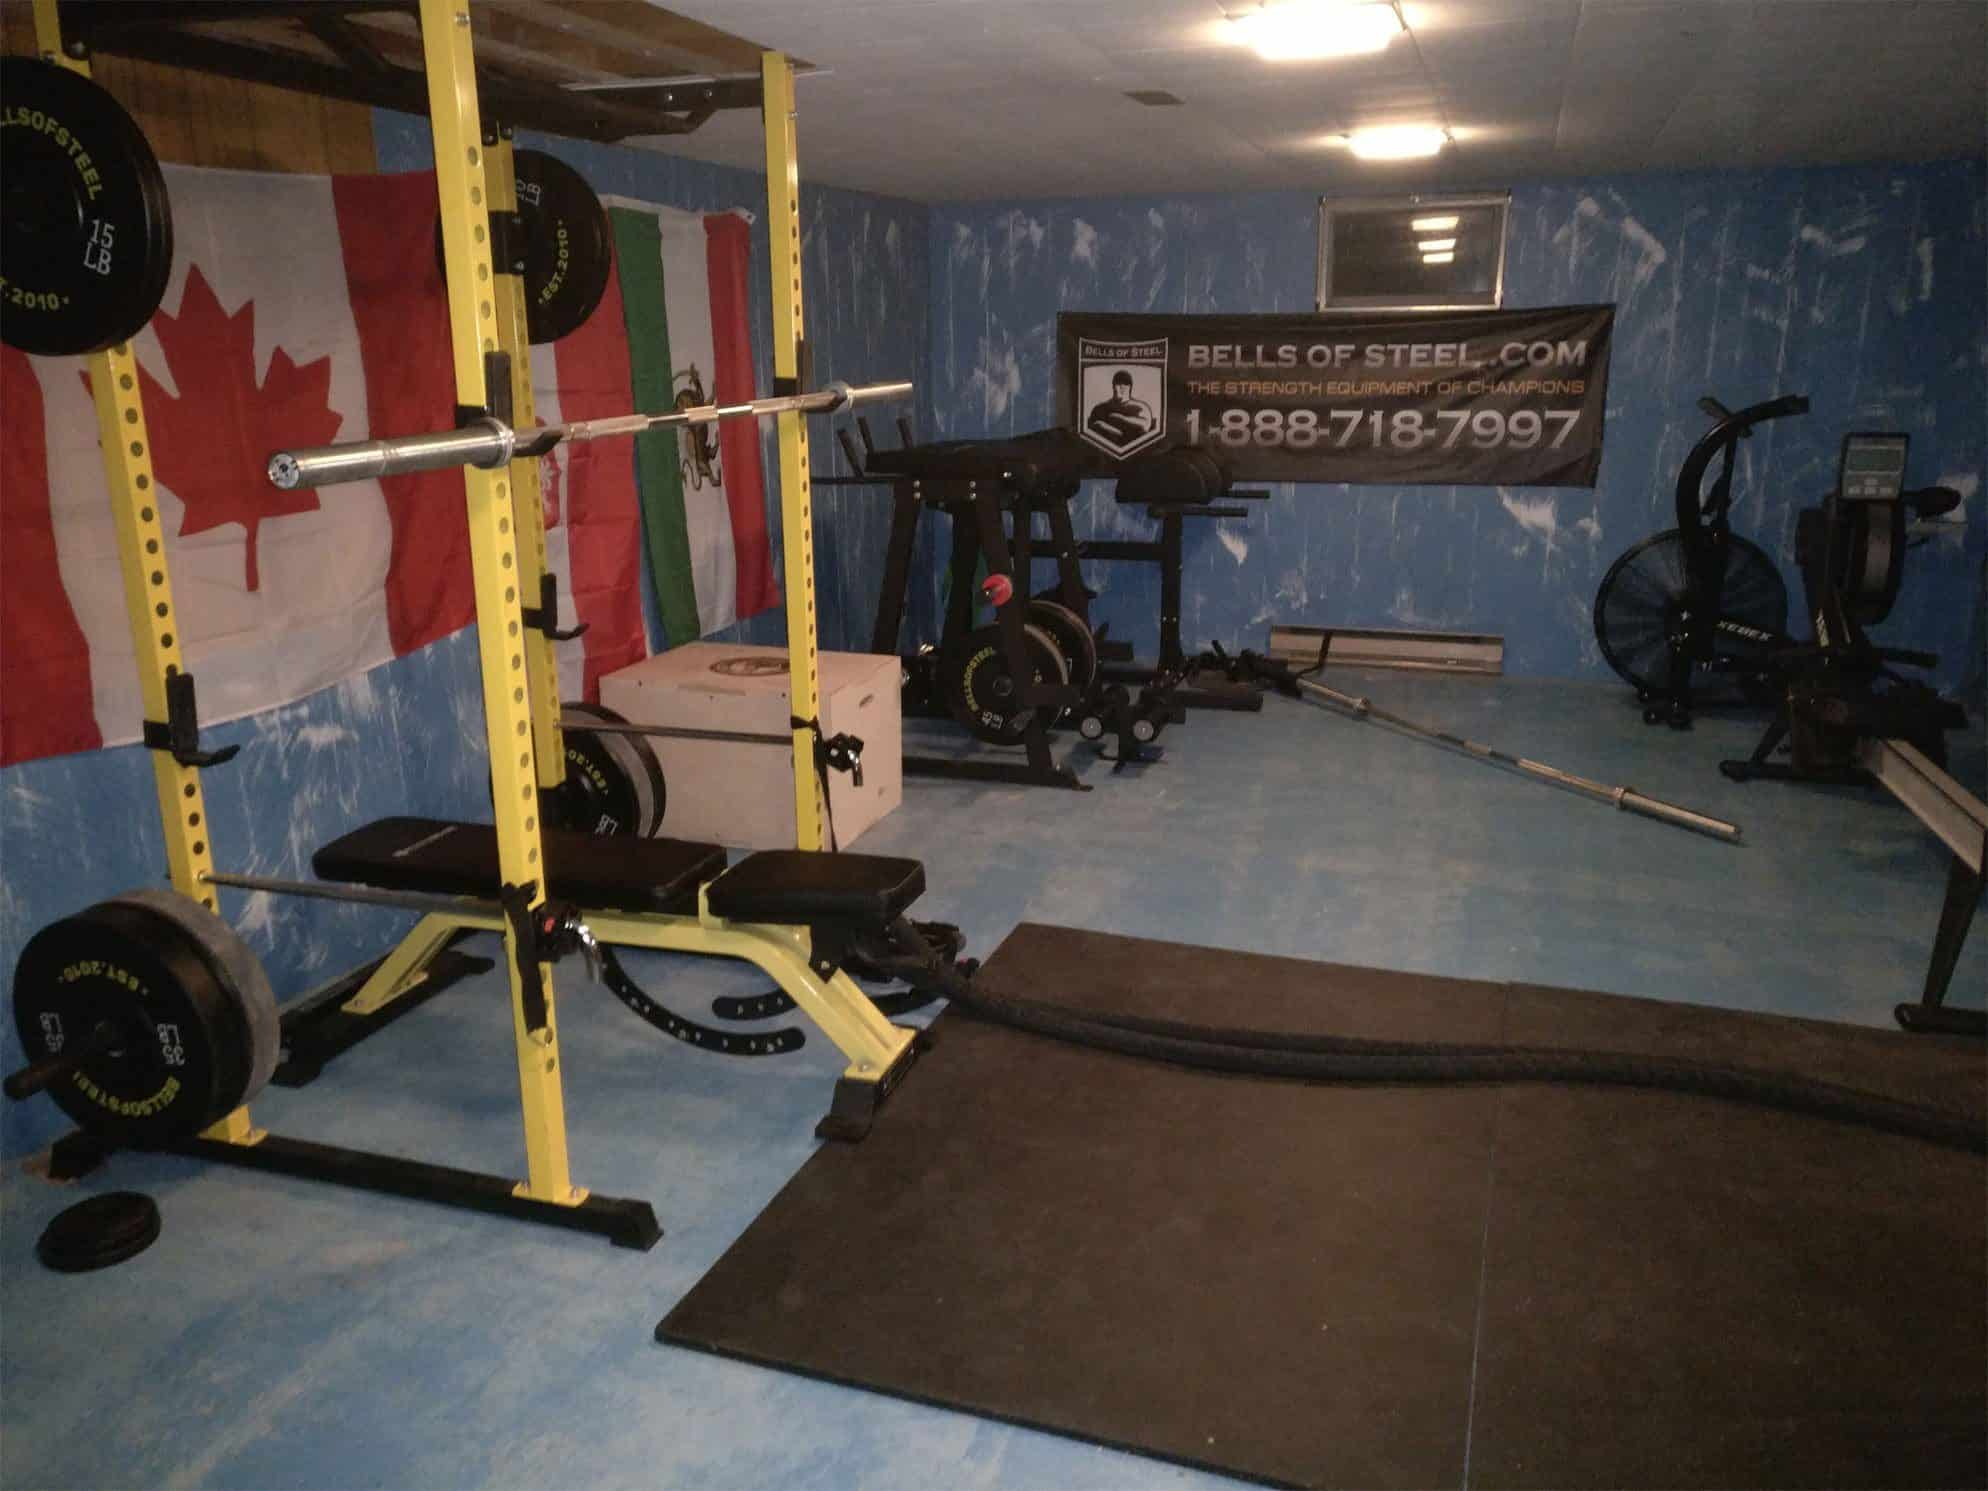 Home gym: how to create the ultimate house of strength